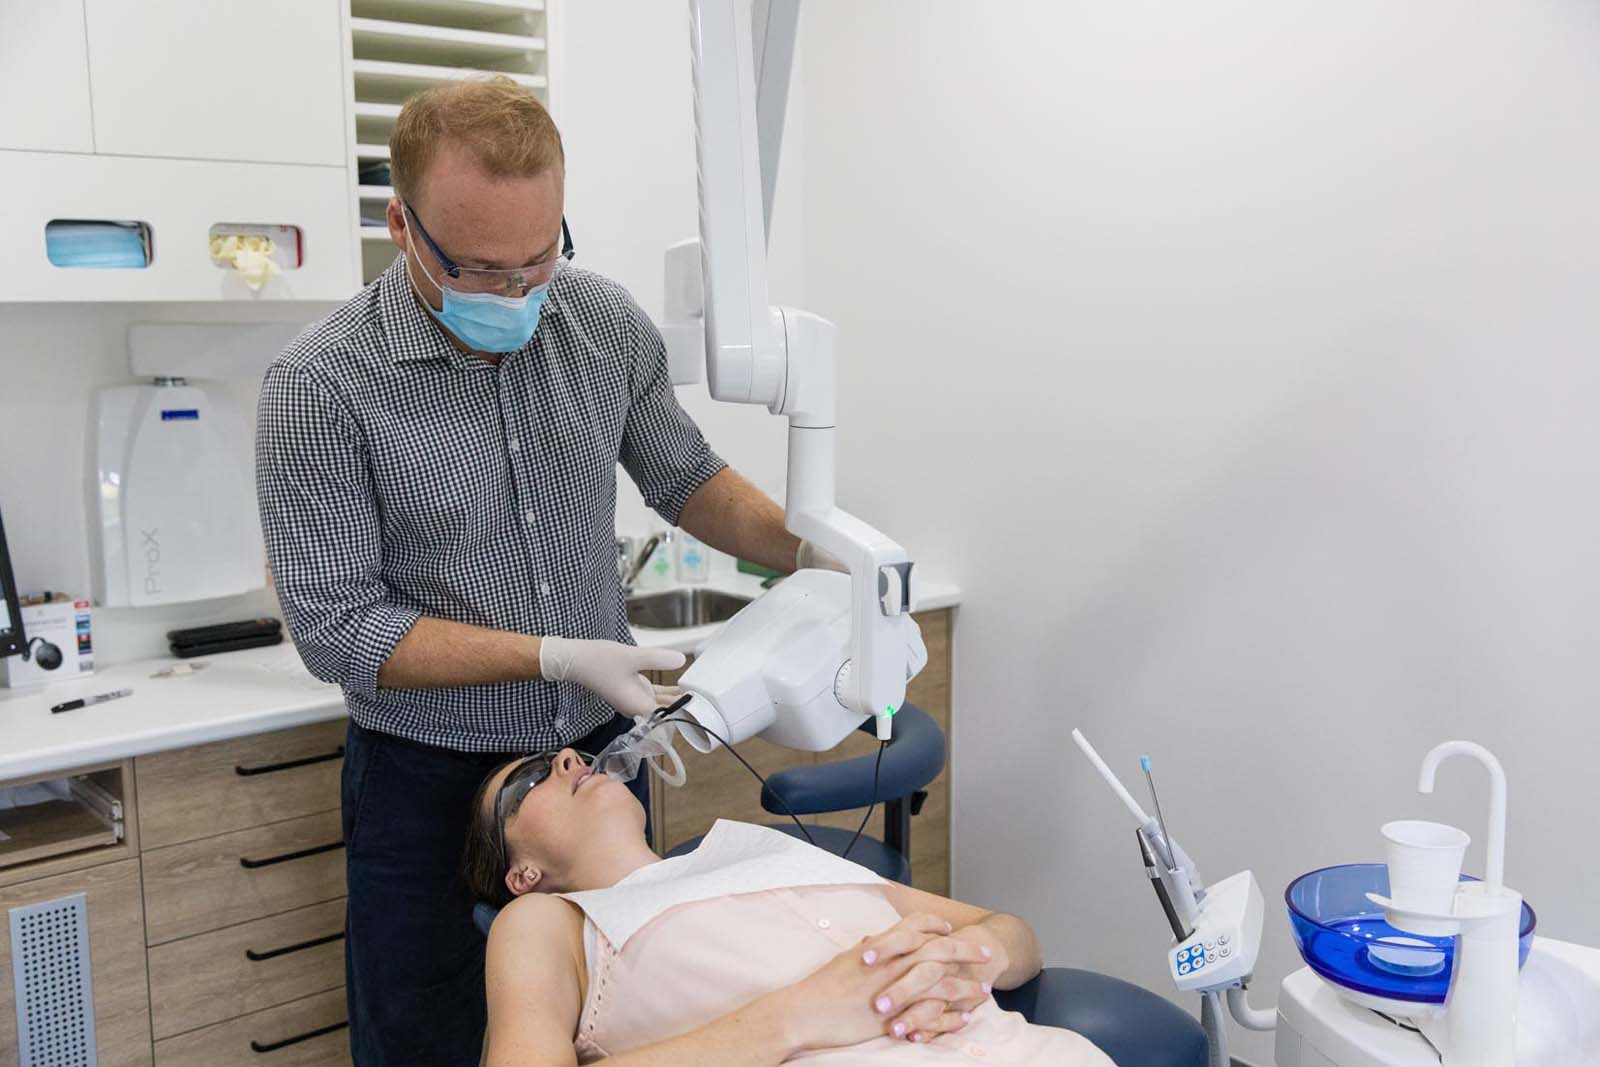 caloundra_dentist_sunshine_coast_dentists_343